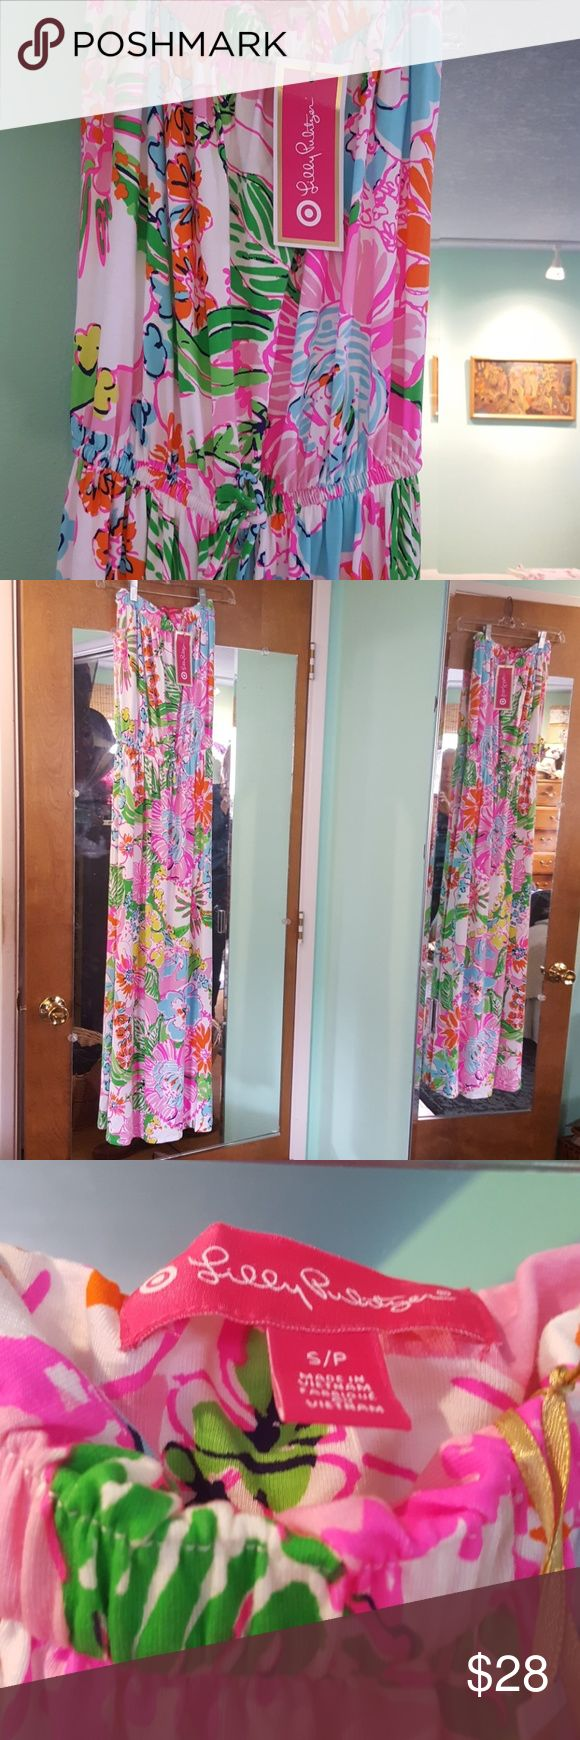 Lilly Pulitzer for Target Maxi Sleeveless Dress This is a fun Lilly Pulitzer Maxi dress. Such a pretty print! NWT. Lilly Pulitzer for Target Dresses Maxi